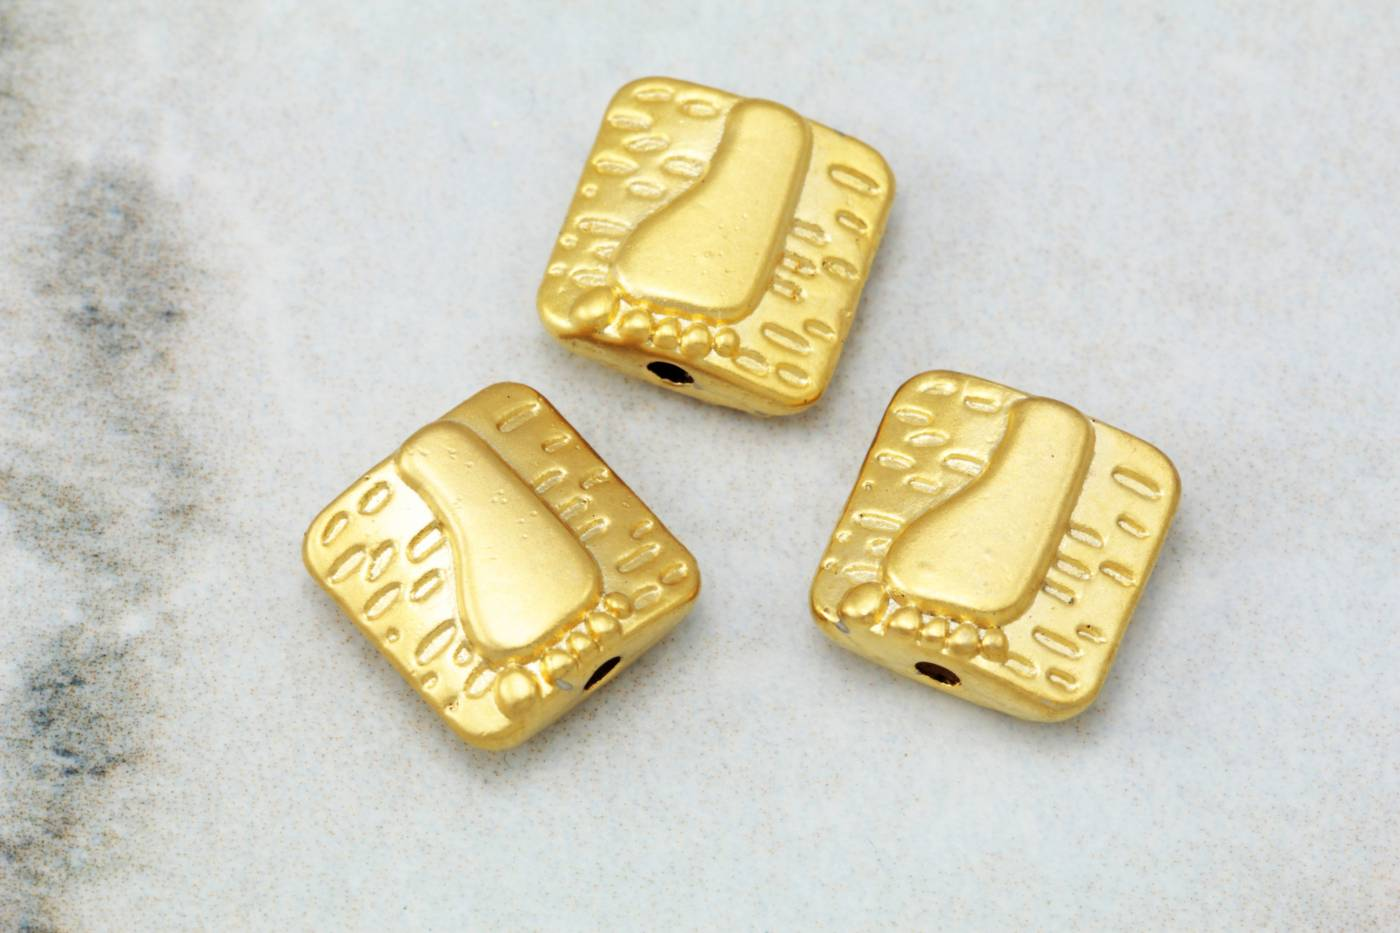 gold-plated-square-shape-footprint-charm.jpg